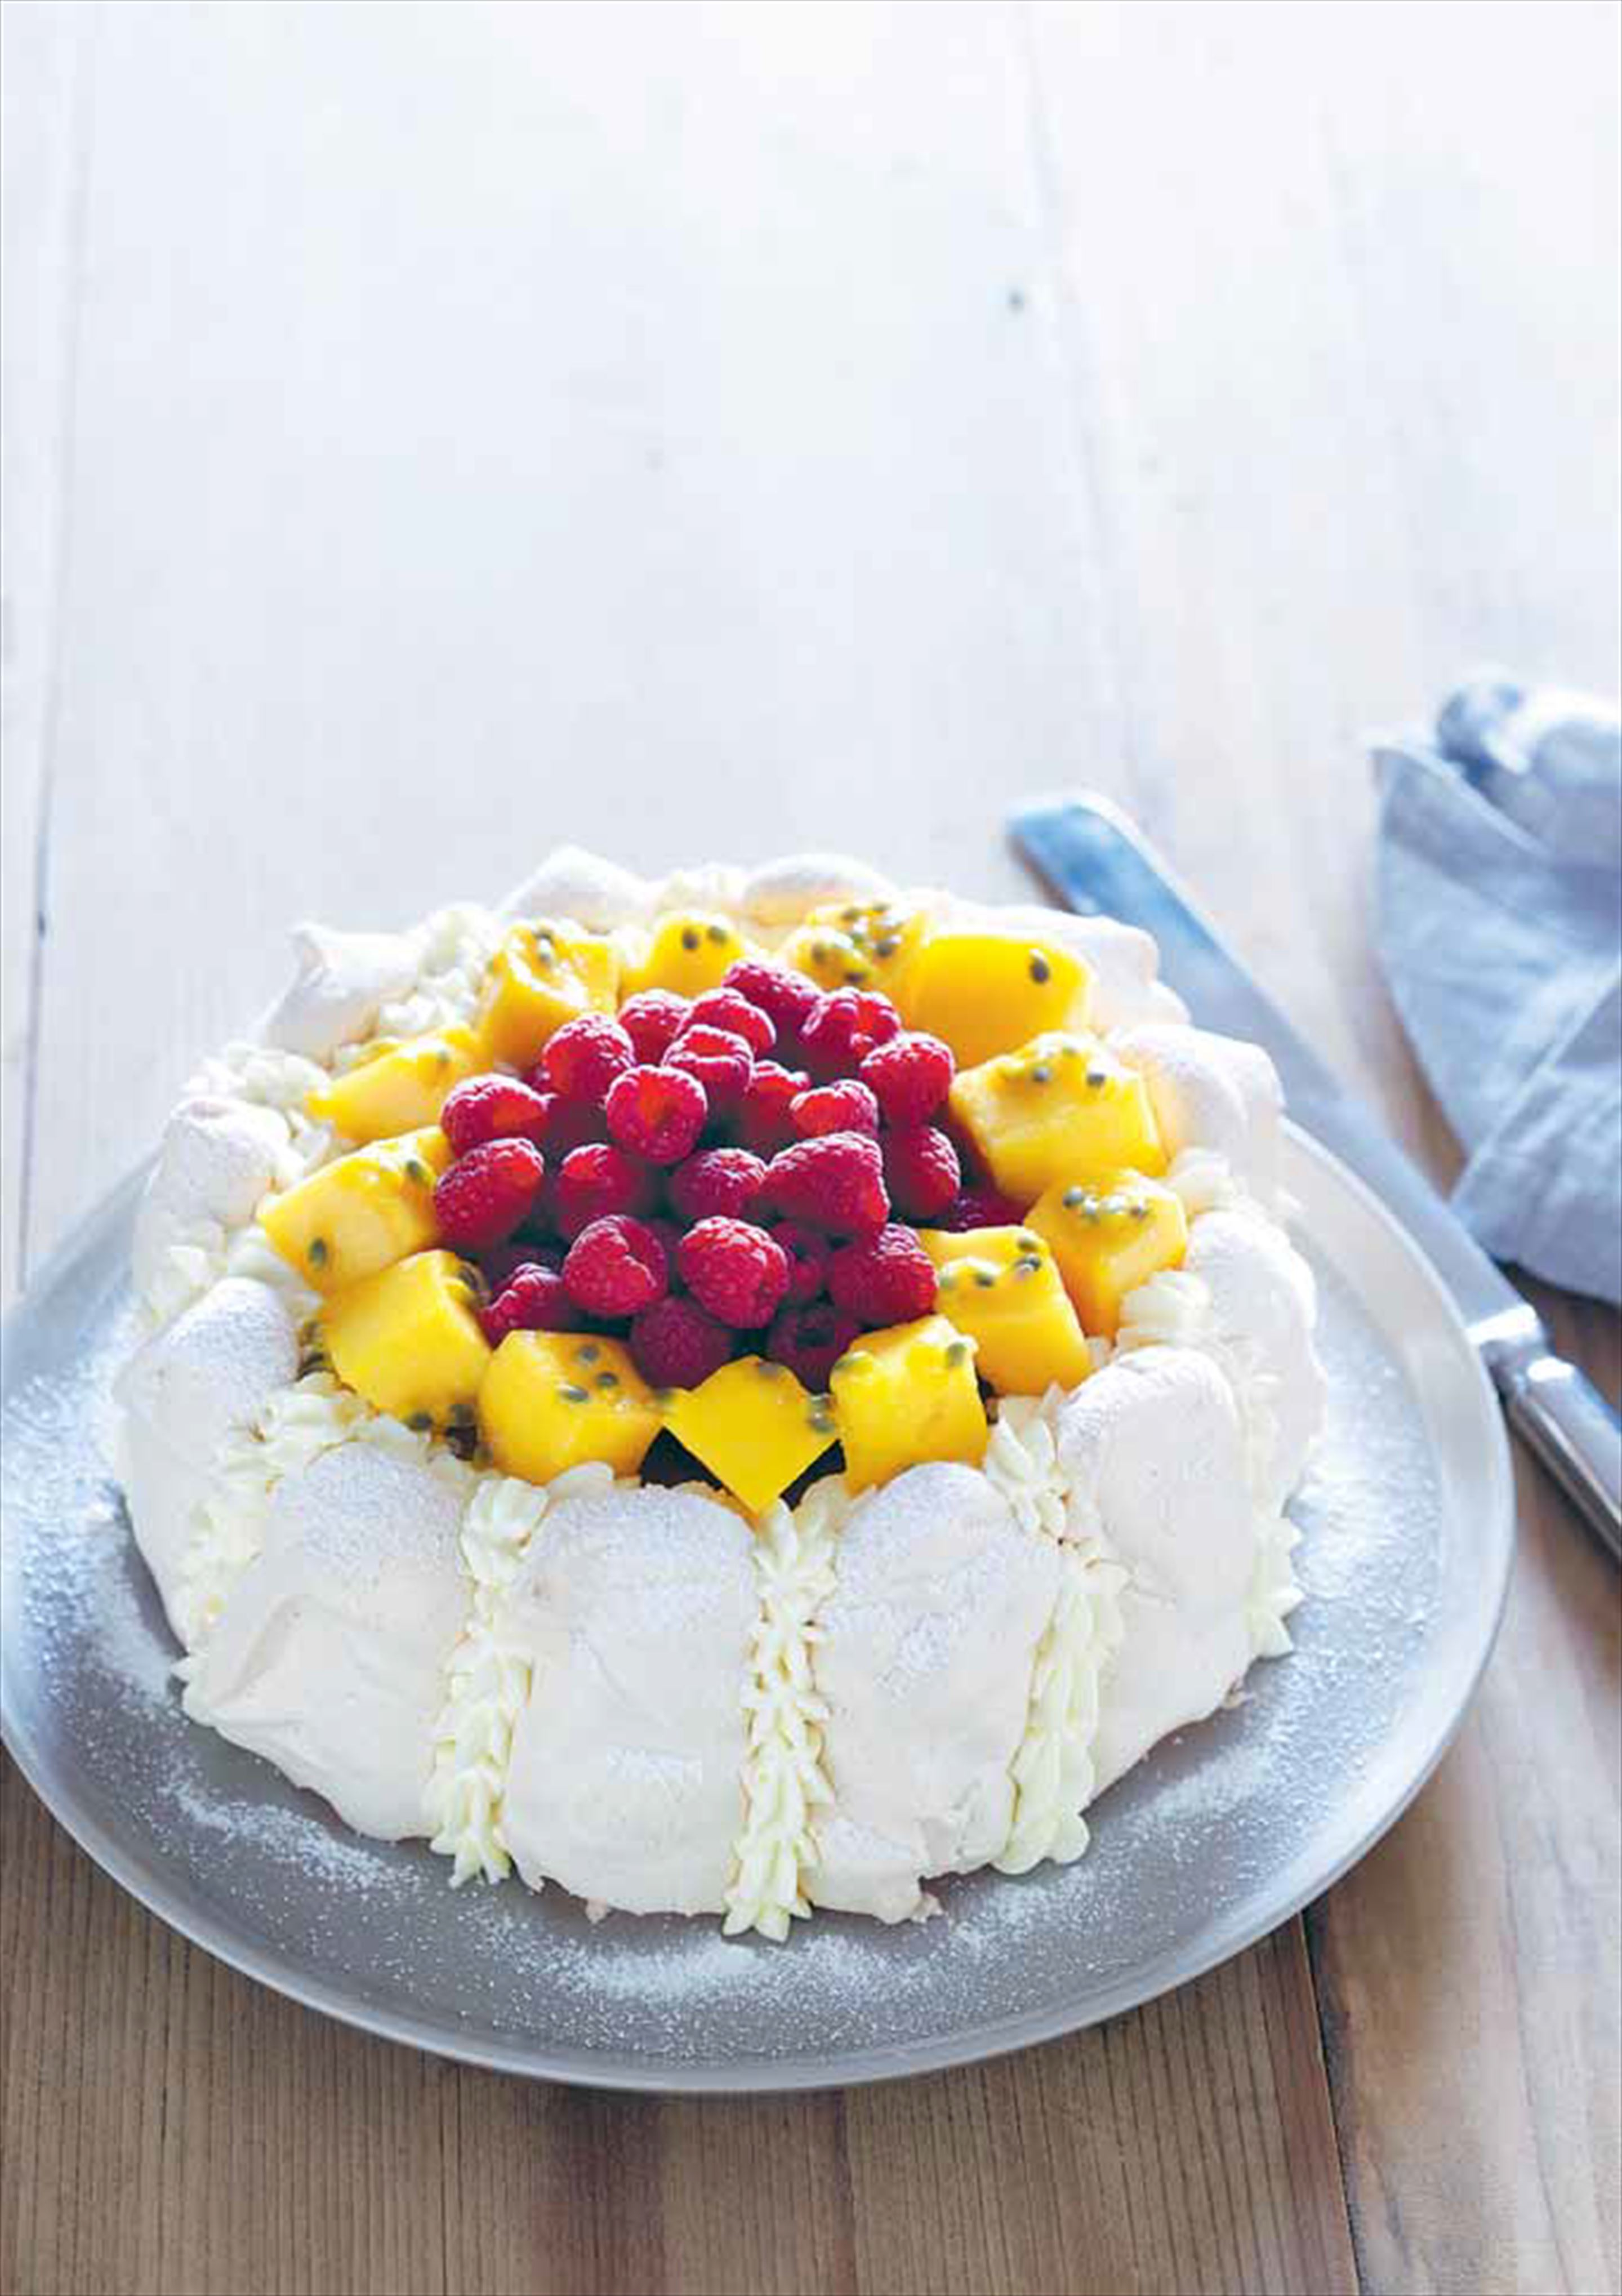 Strawberry vacherin with mango and raspberries